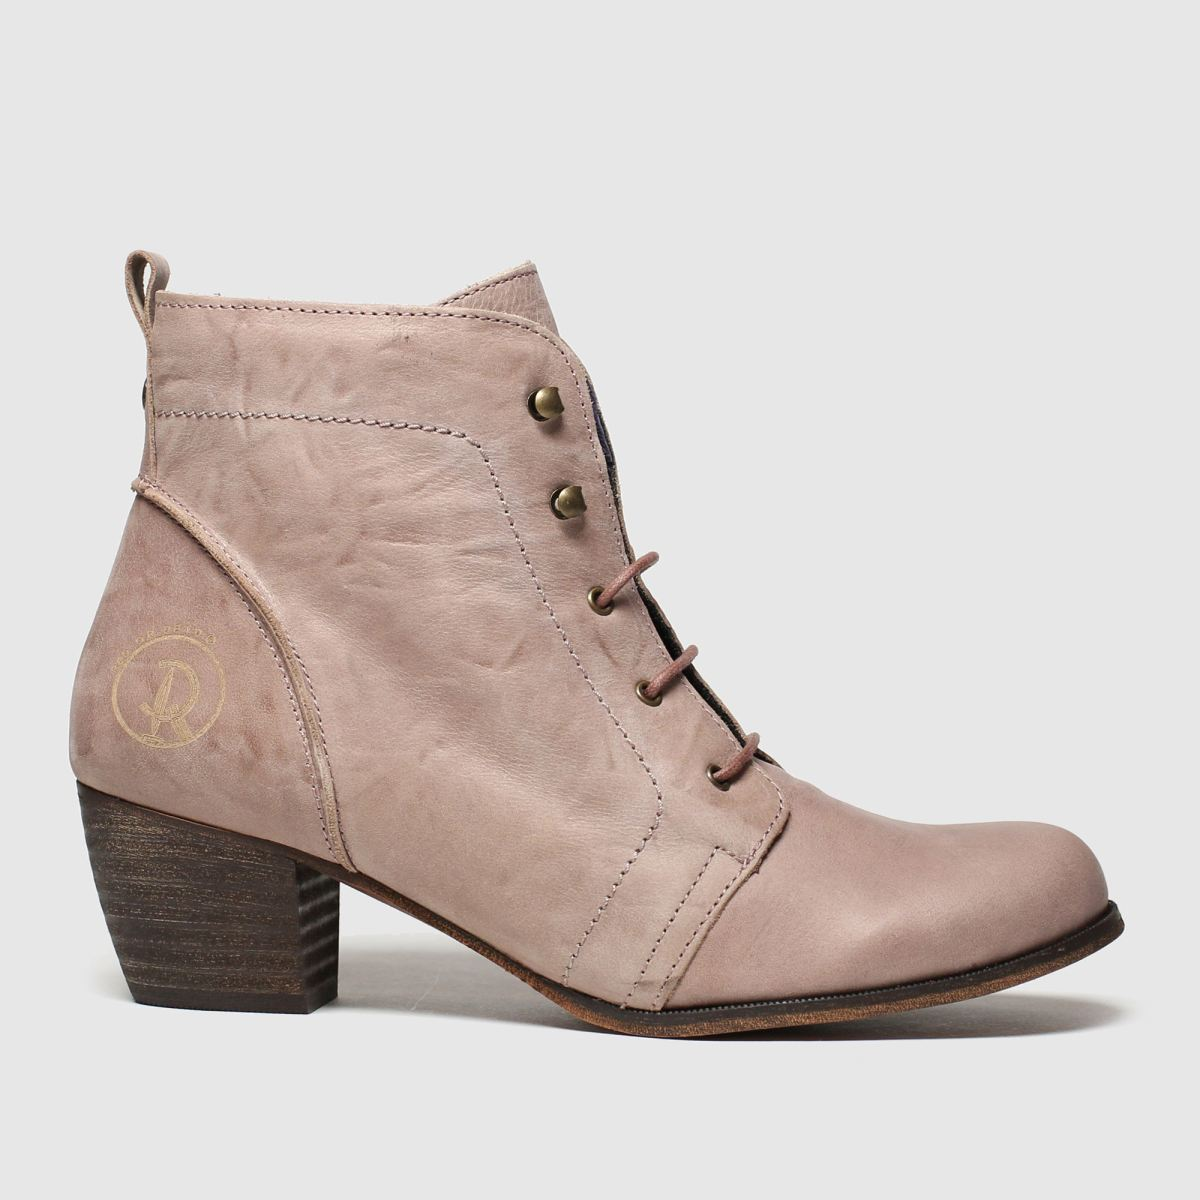 Red Or Dead Stone Exam Boots